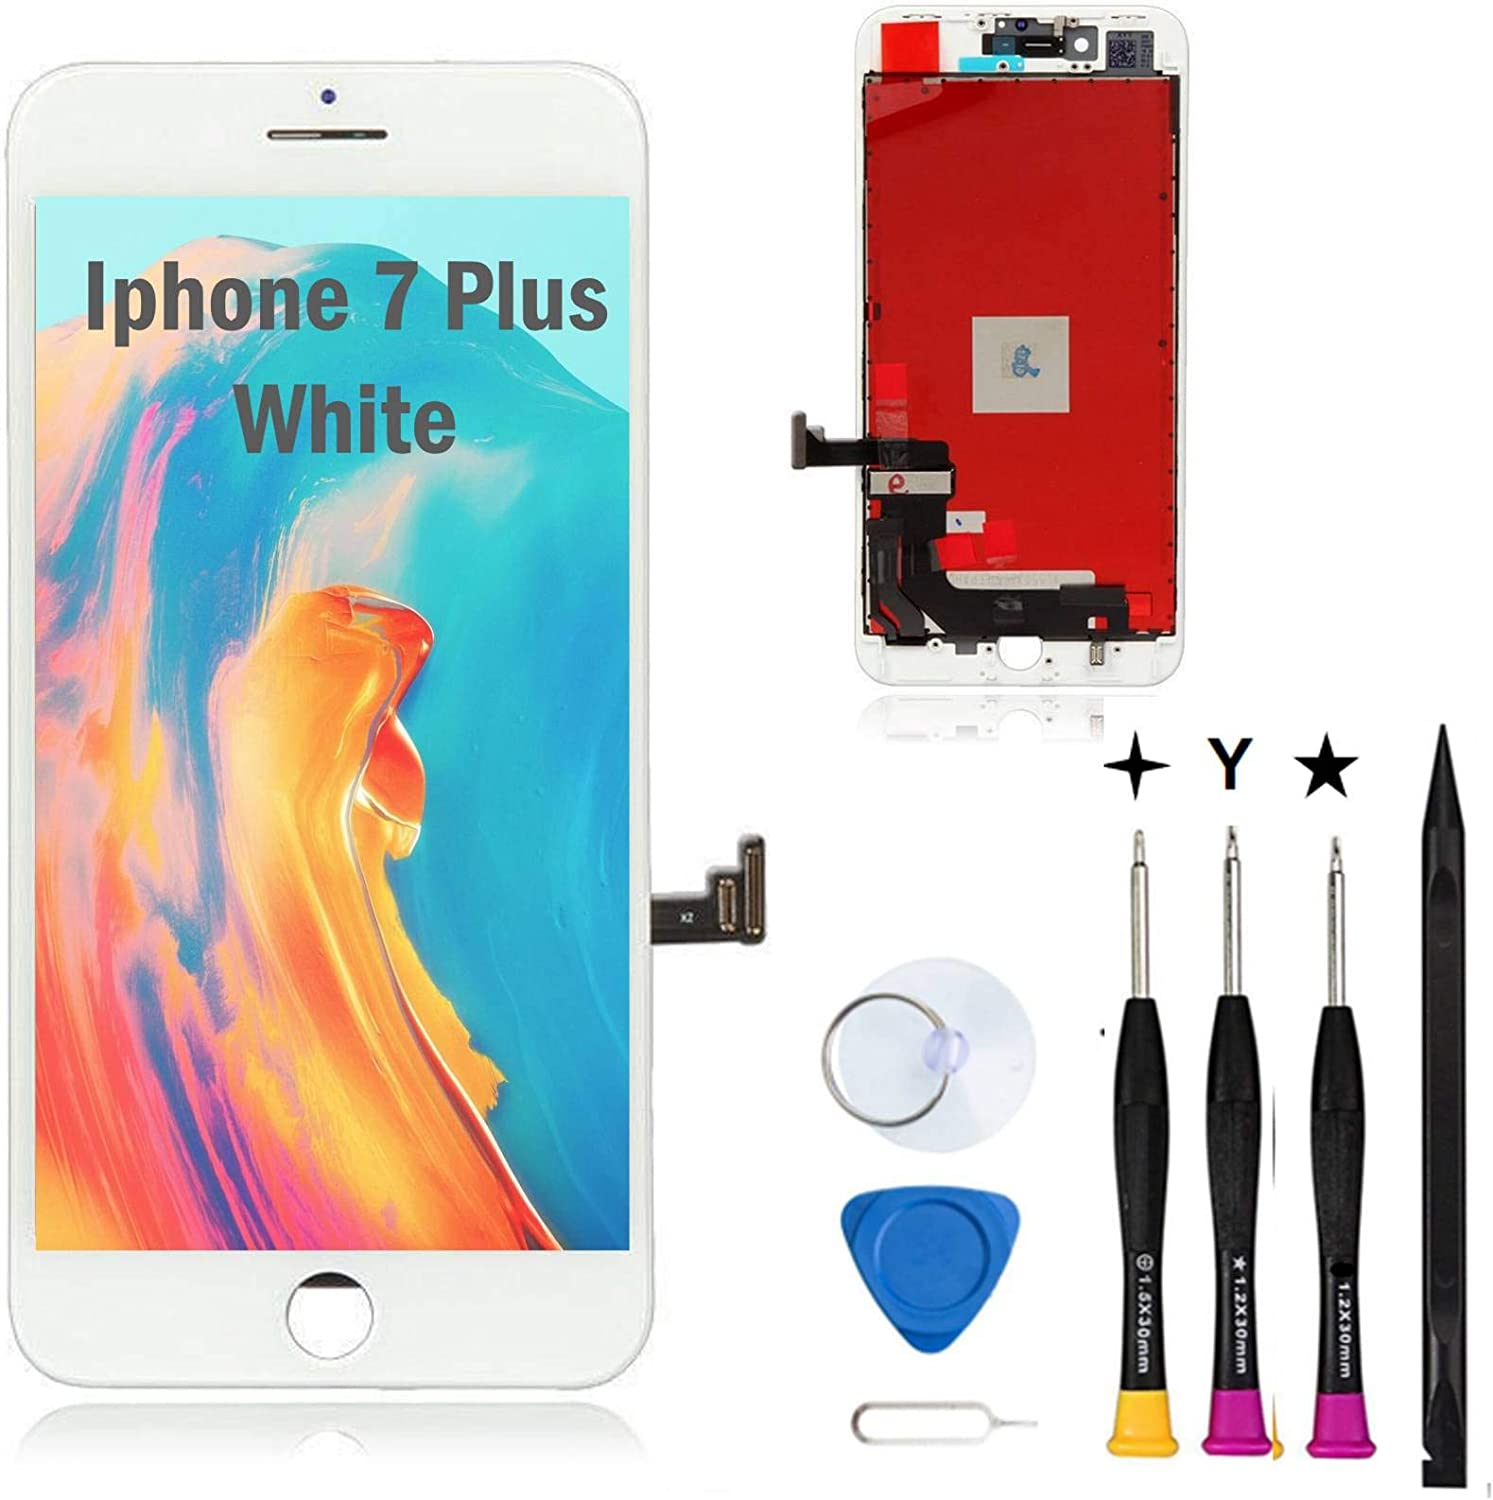 Oli & Ode for iPhone 7 Plus Screen Replacement White iPhone 7 Plus LCD Screen Replacement Kit iPhone 7 Plus digitizer LCD Assembly with 3D Touch + Full Free Repair Tools Model A1784, A1785, A1661